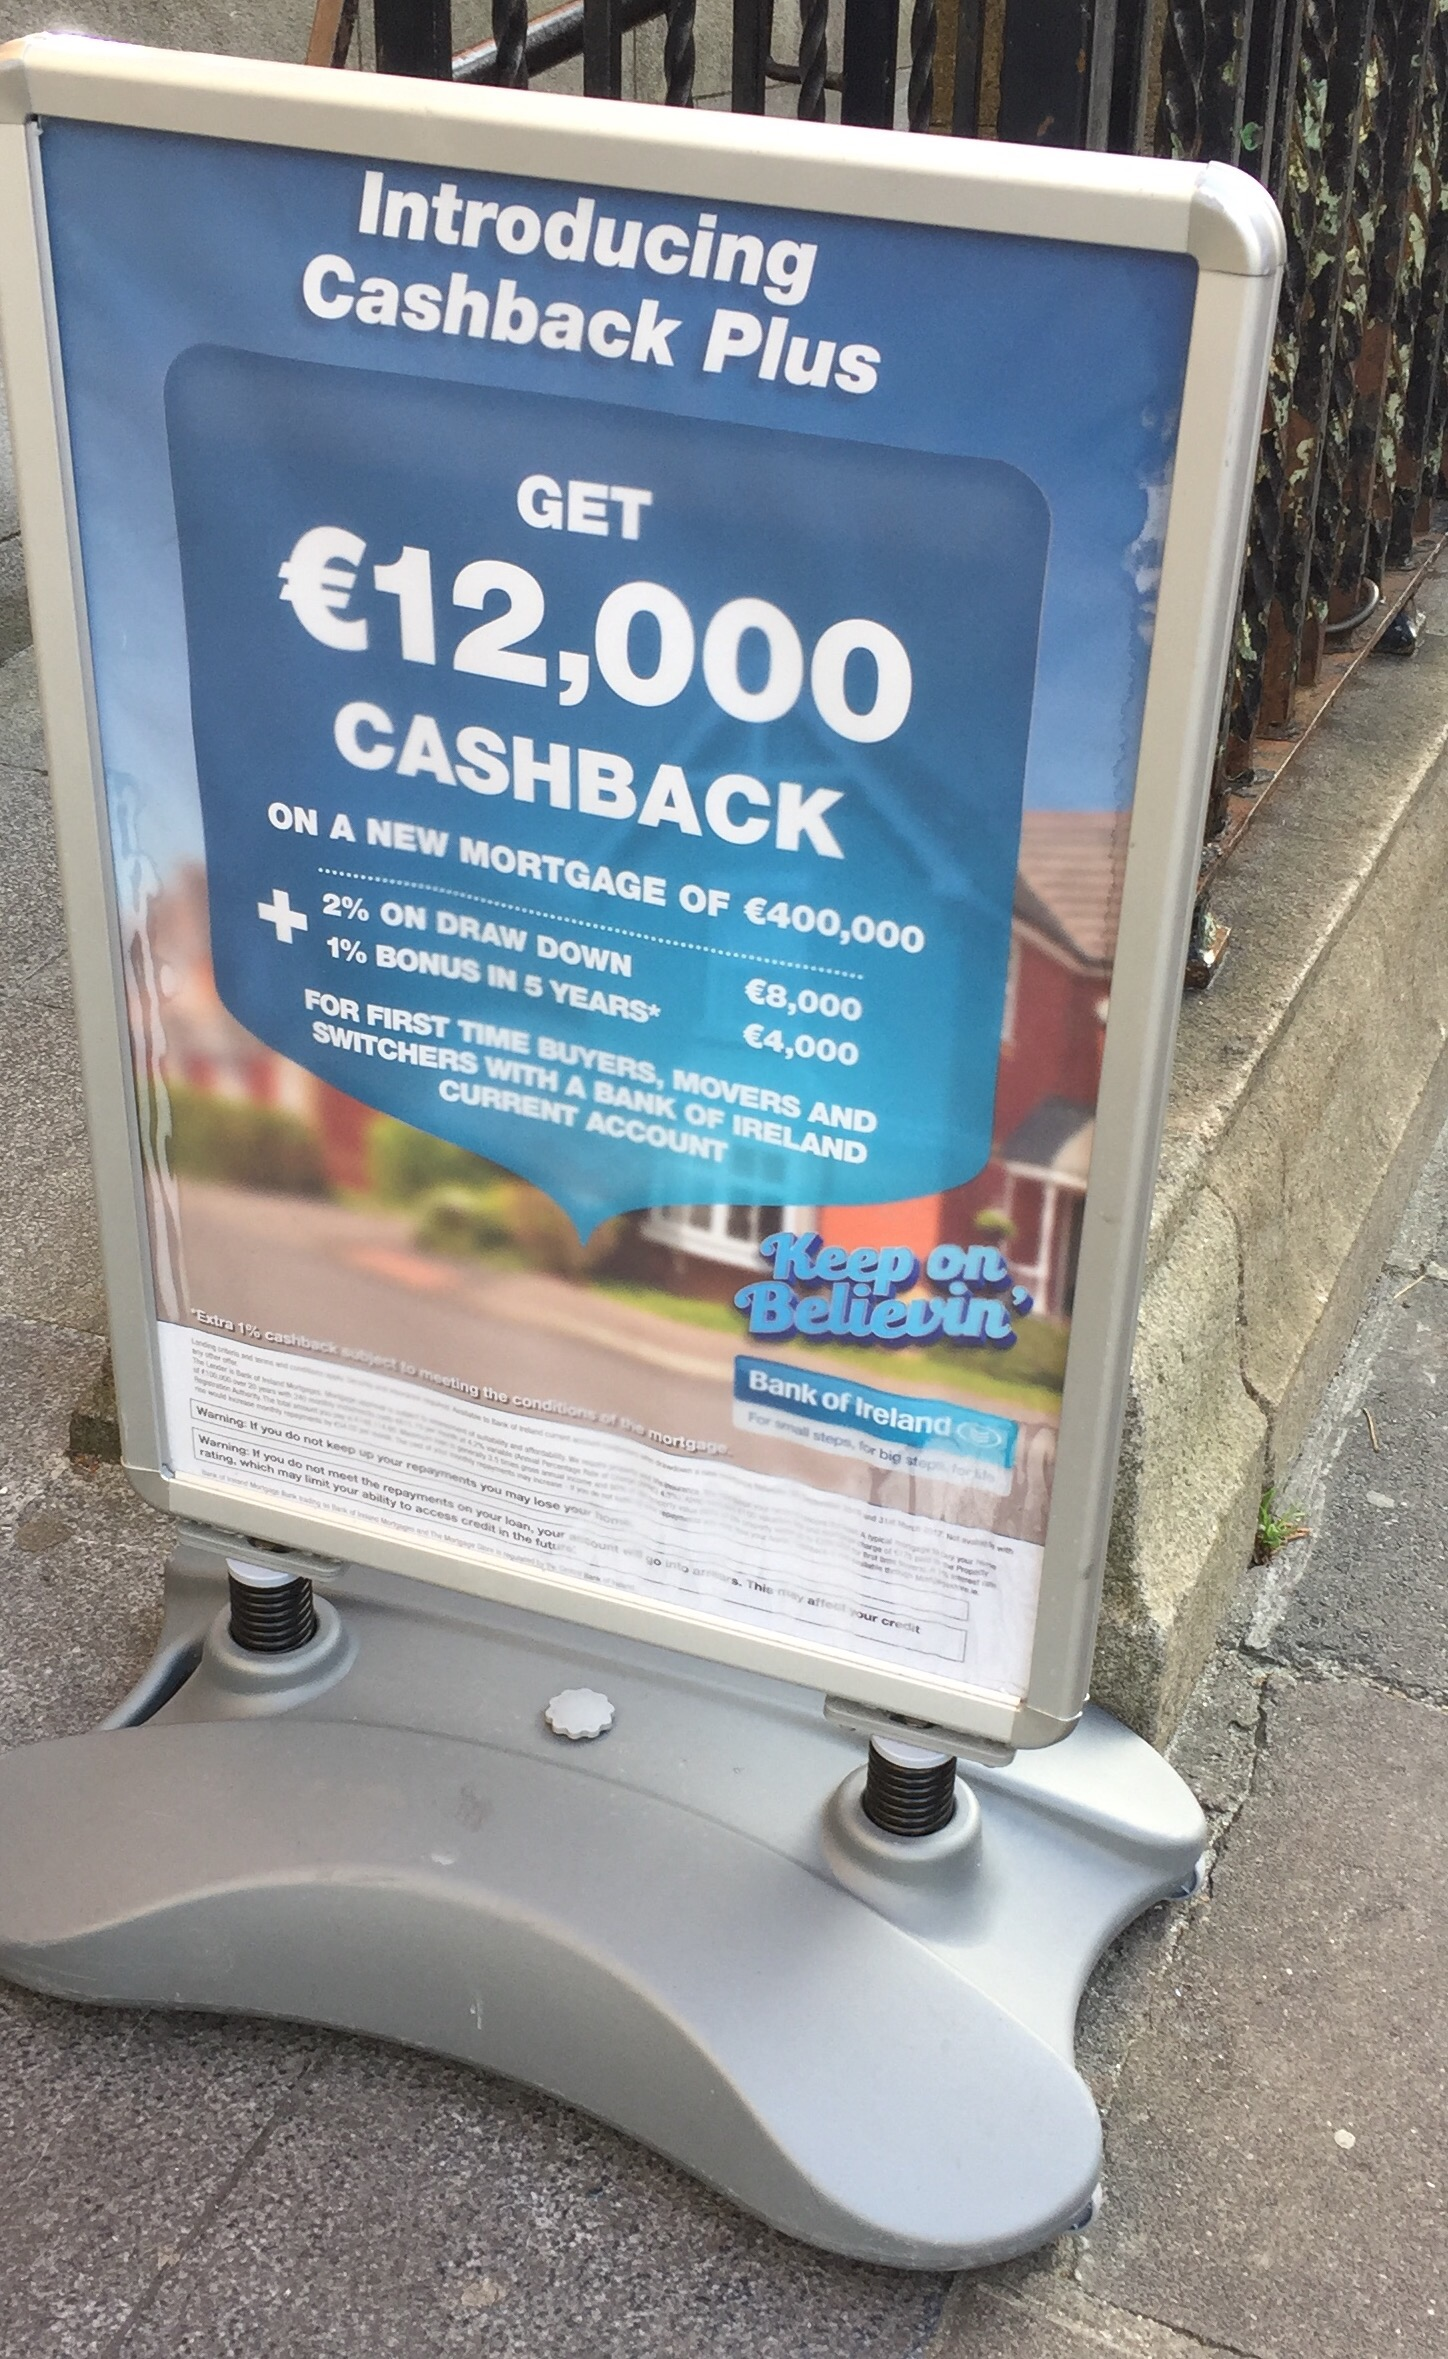 Bank of Ireland – introducing cash back plus – get €12,000 cashback